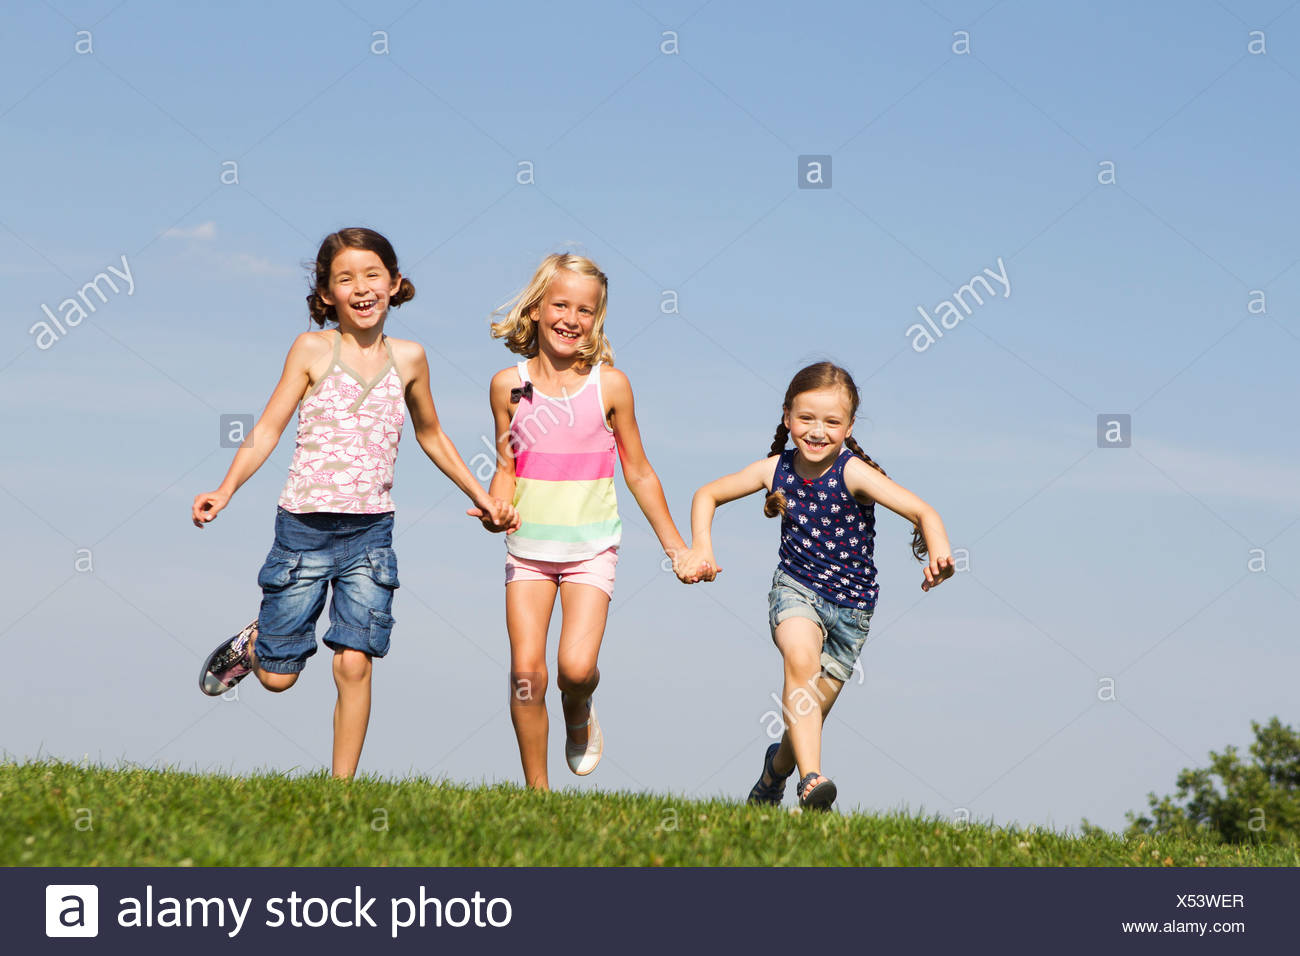 Girls running together in field - Stock Image